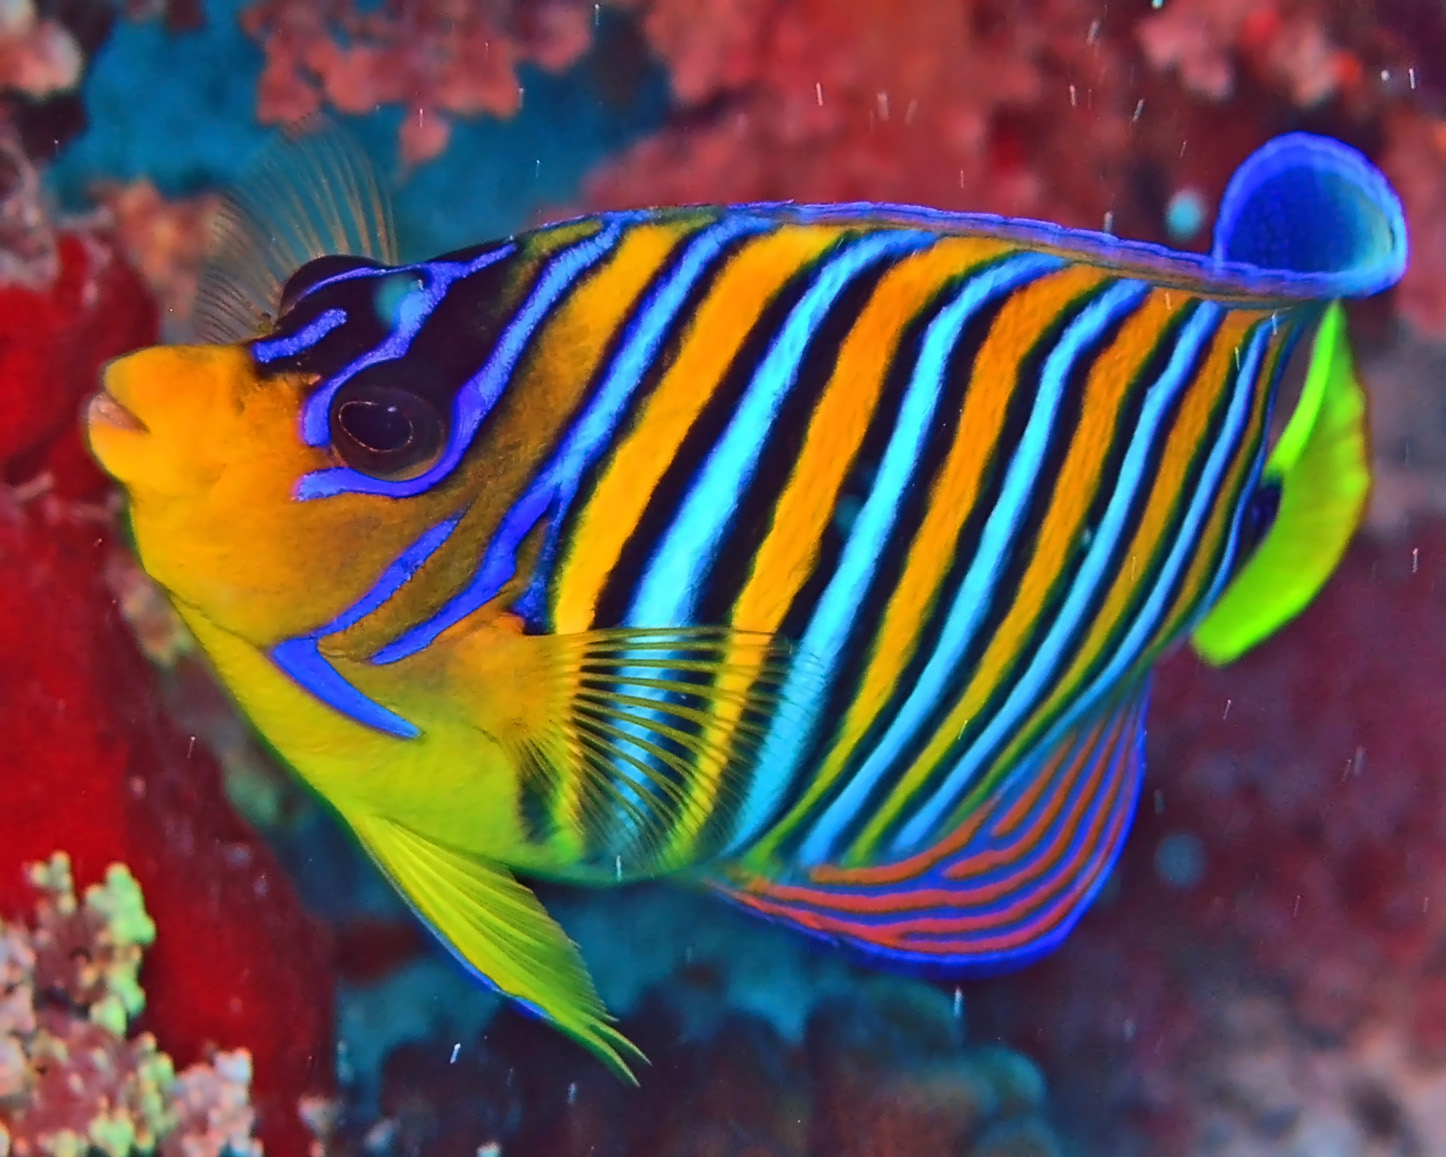 Here you can clearly see the beautiful stripes of the Royal Angelfish ...